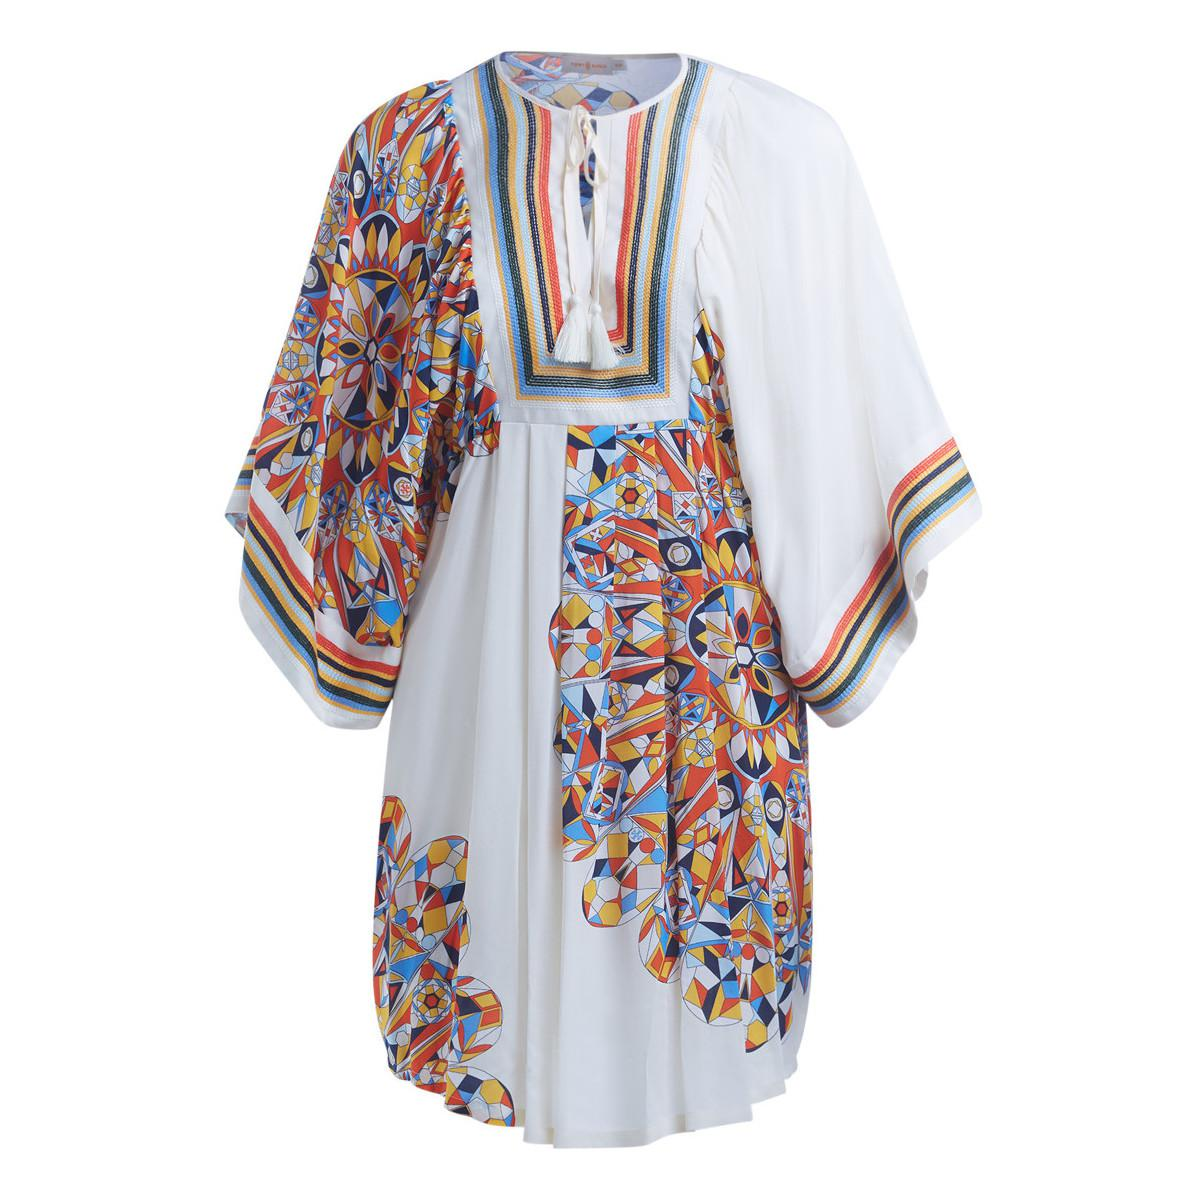 adc490ba7666 Tory Burch Tory Birch Kaleidoscope White Tunic With Multicolor ...